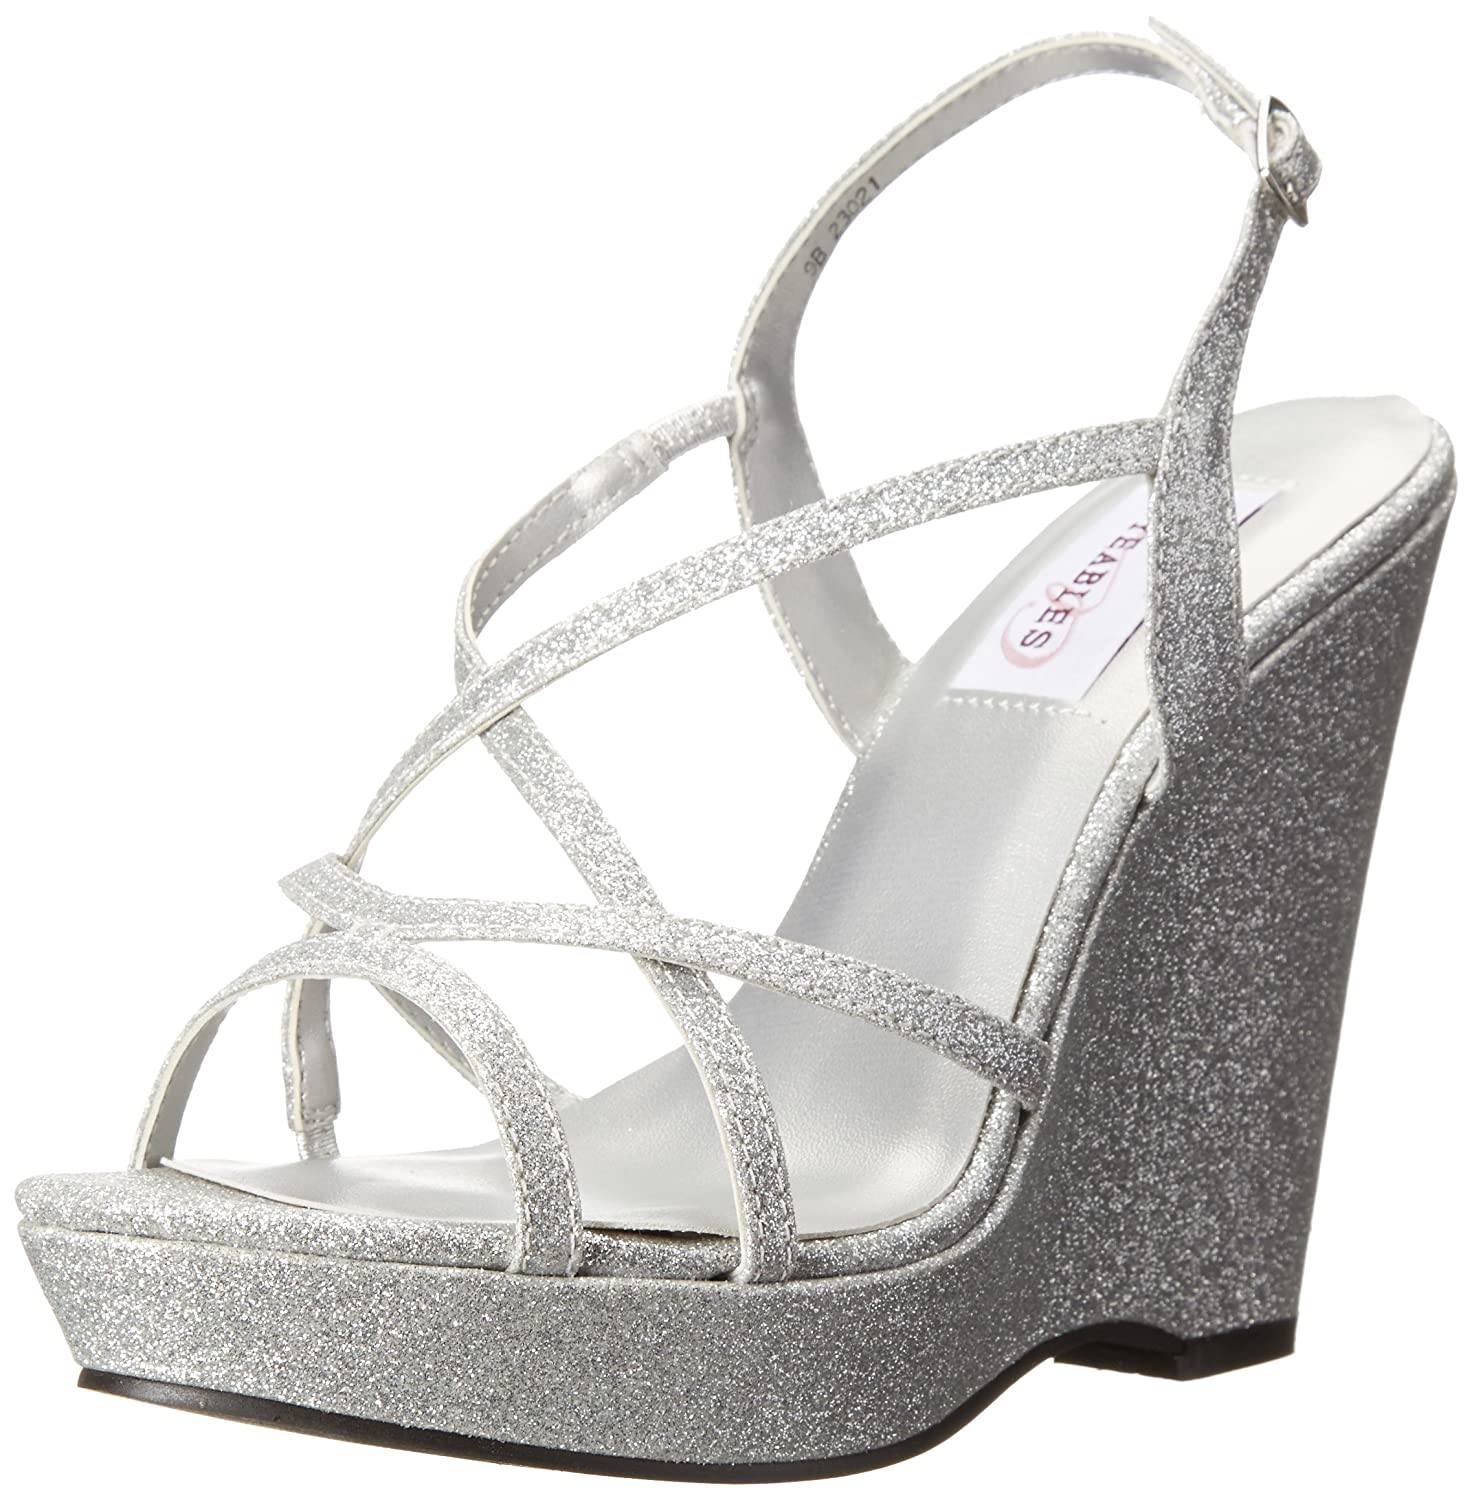 Dyeables, Inc Womens Dee Wedge Sandal B00PD00EJE 8 B(M) US|Silver